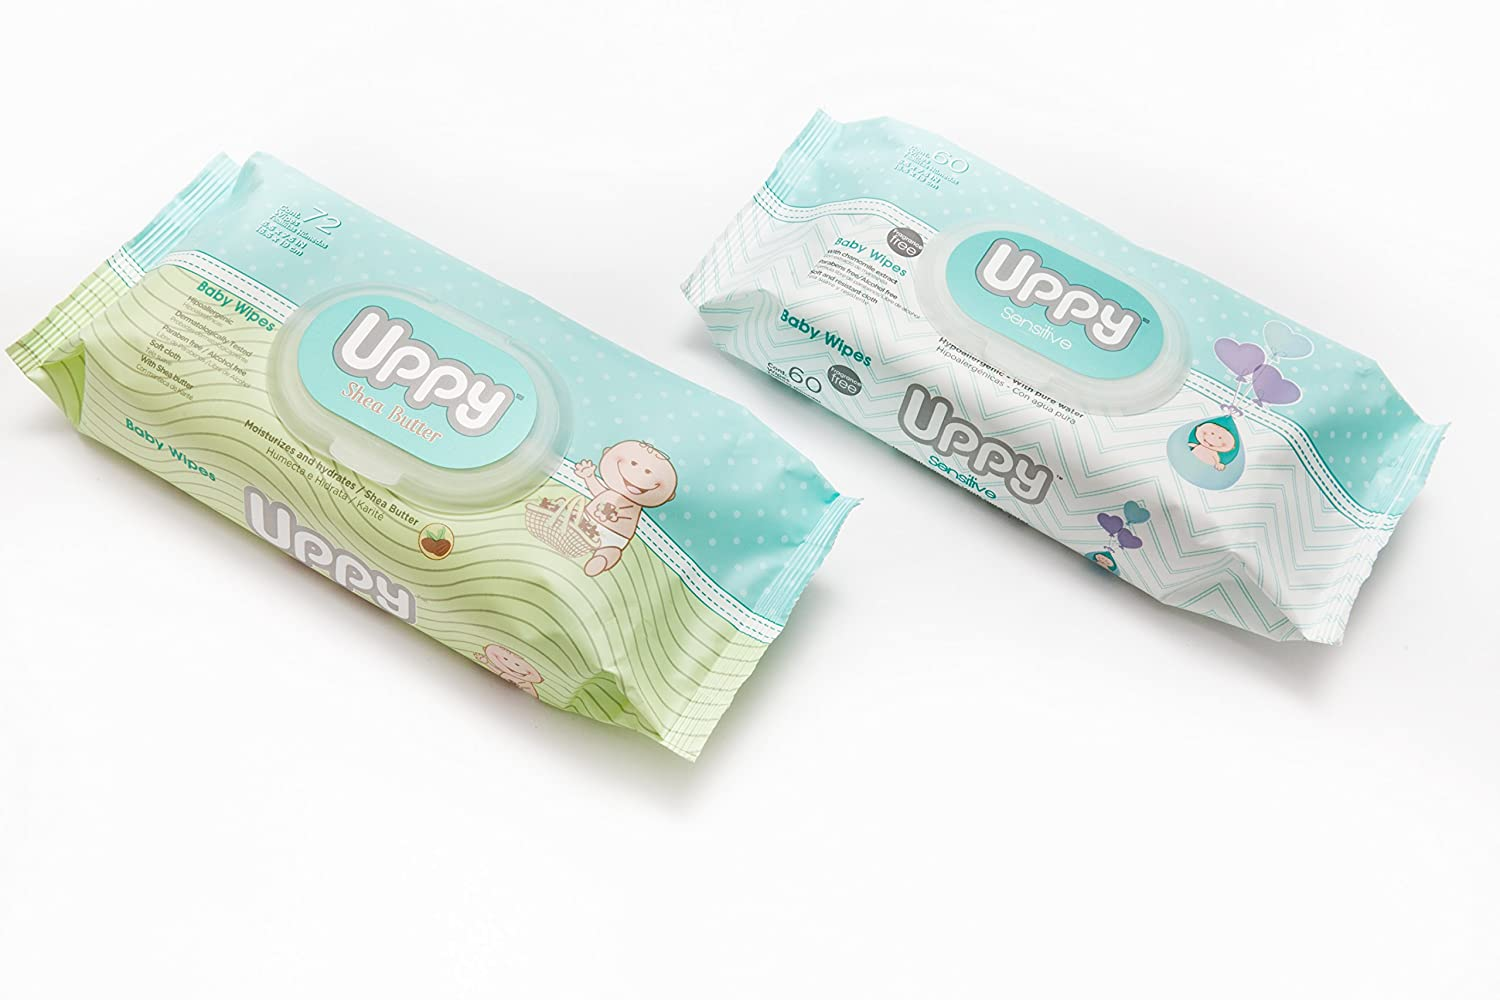 Amazon.com : UPPY Sensitive Baby Wipes - Ideal for Diaper Bag and Traveling. Made With Purified Water. Pleasant Shea Butter Scent. Soft Cloth.